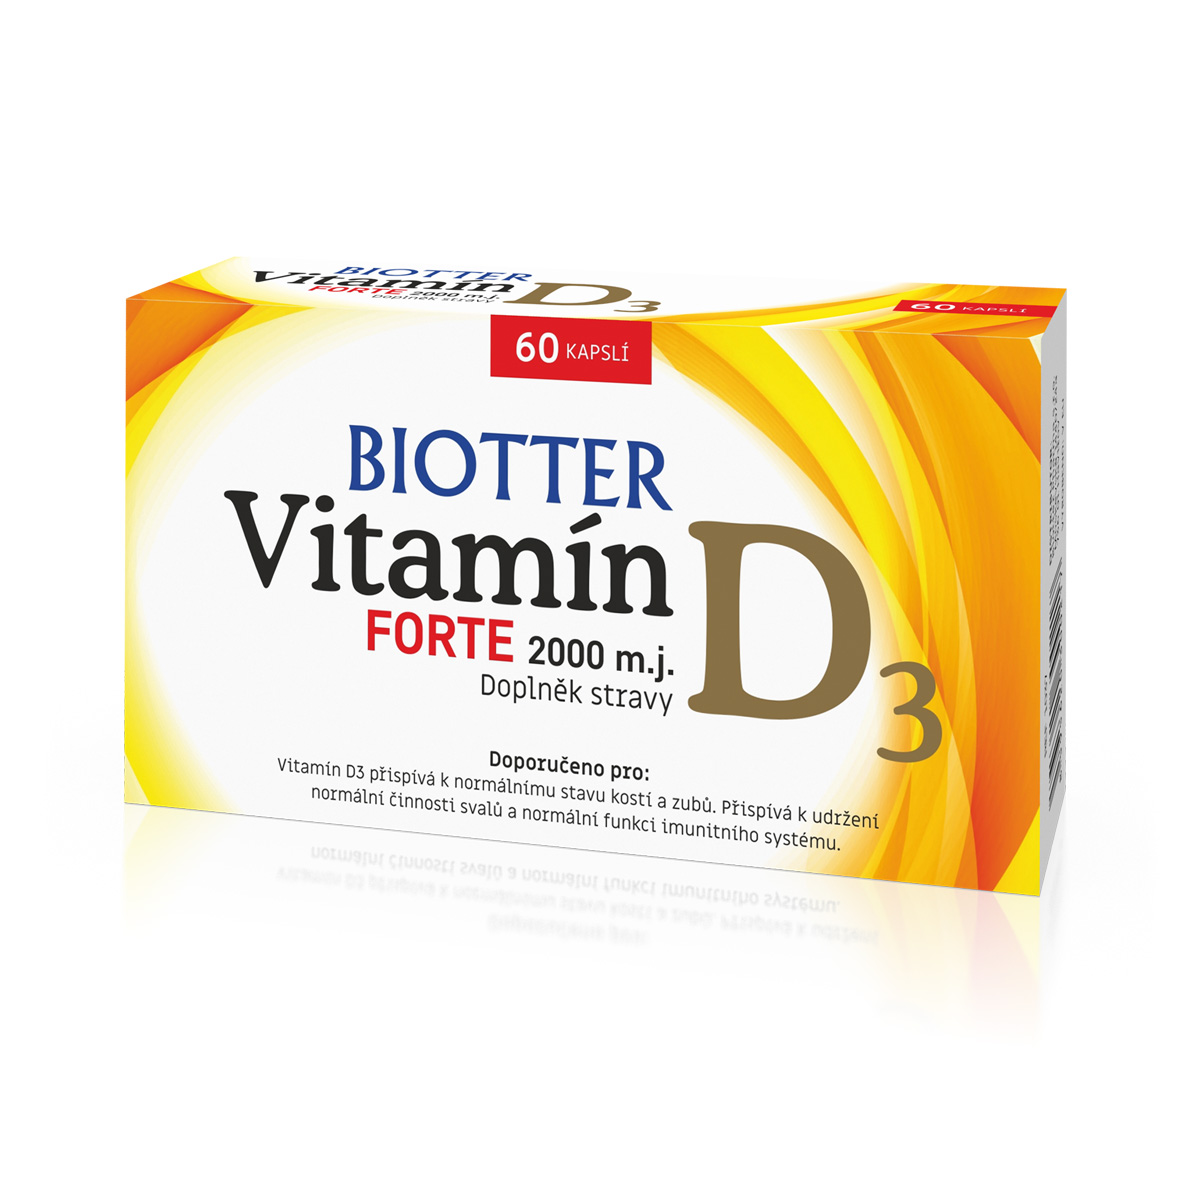 Biotter Vitamin D3 FORTE 60 cps